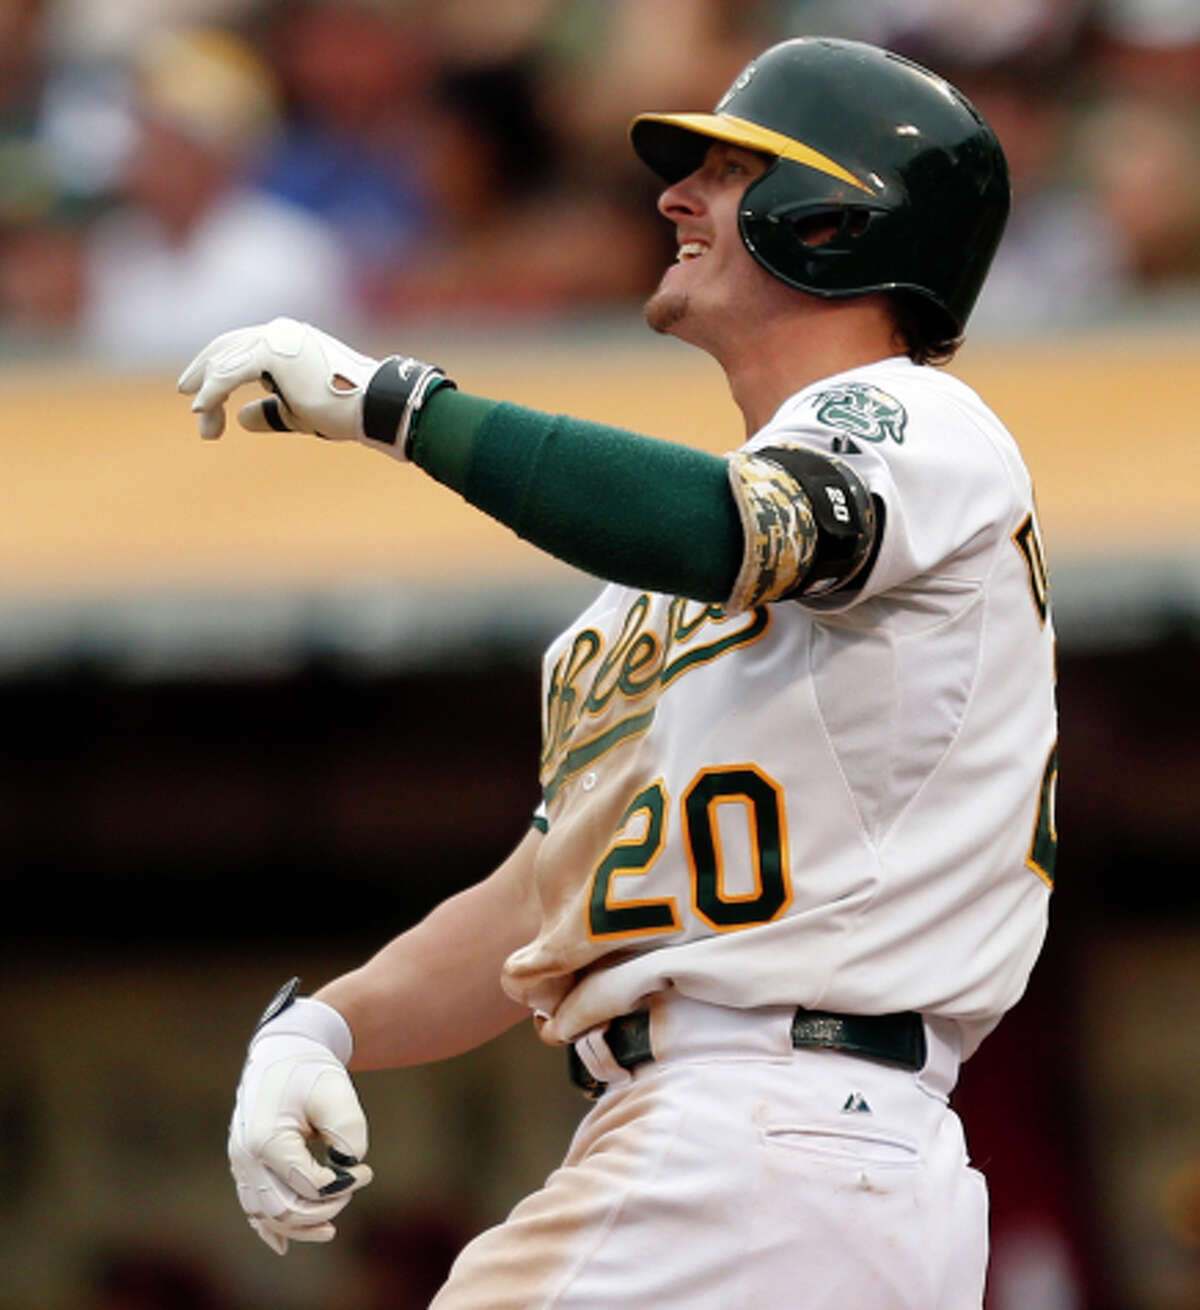 Josh Donaldson was one of the A's top sluggers during the past three seasons.